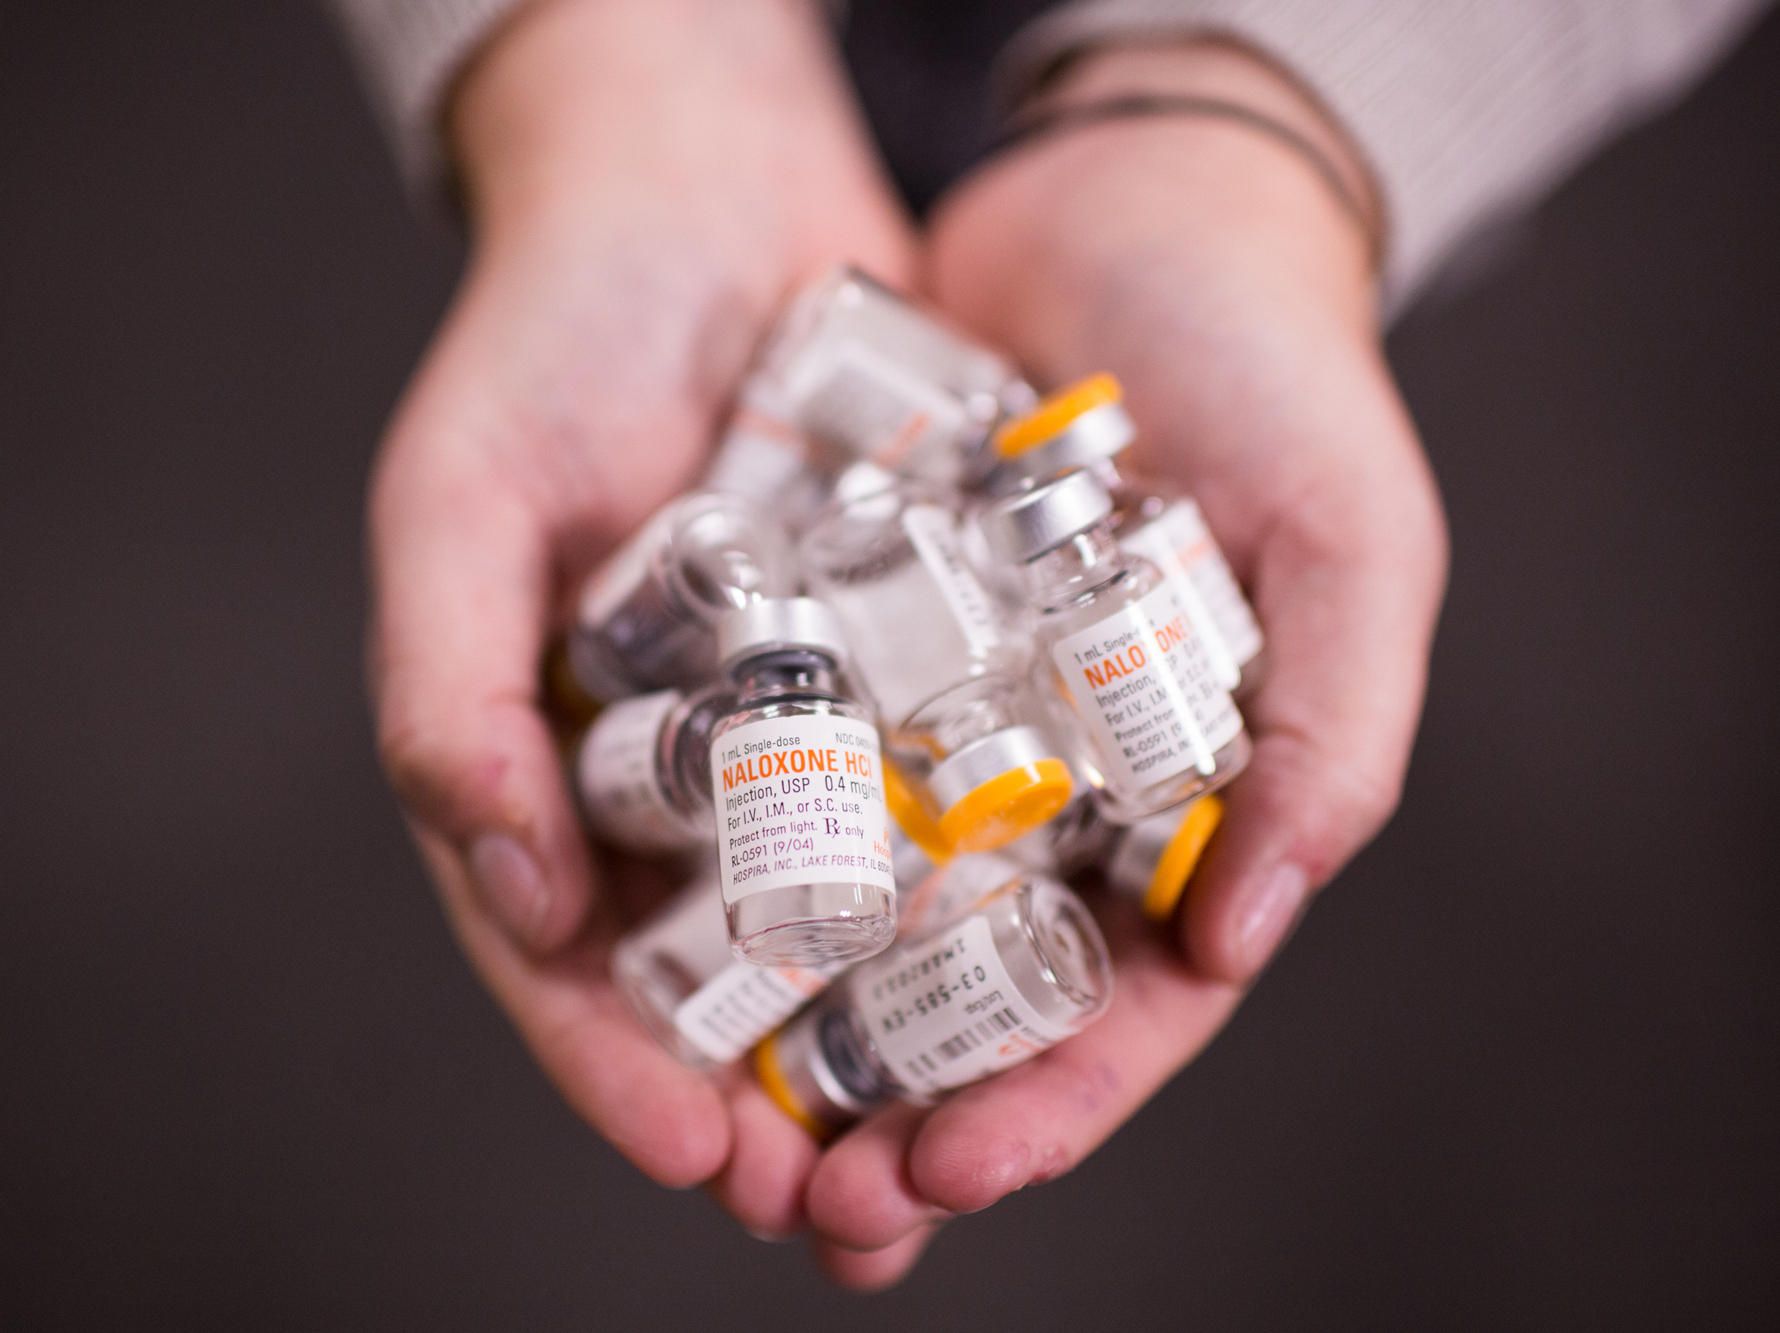 drug overdose Learn what a drug overdose is, how to recognize risk factors and symptoms, how it is treated, and how you can help prevent it.